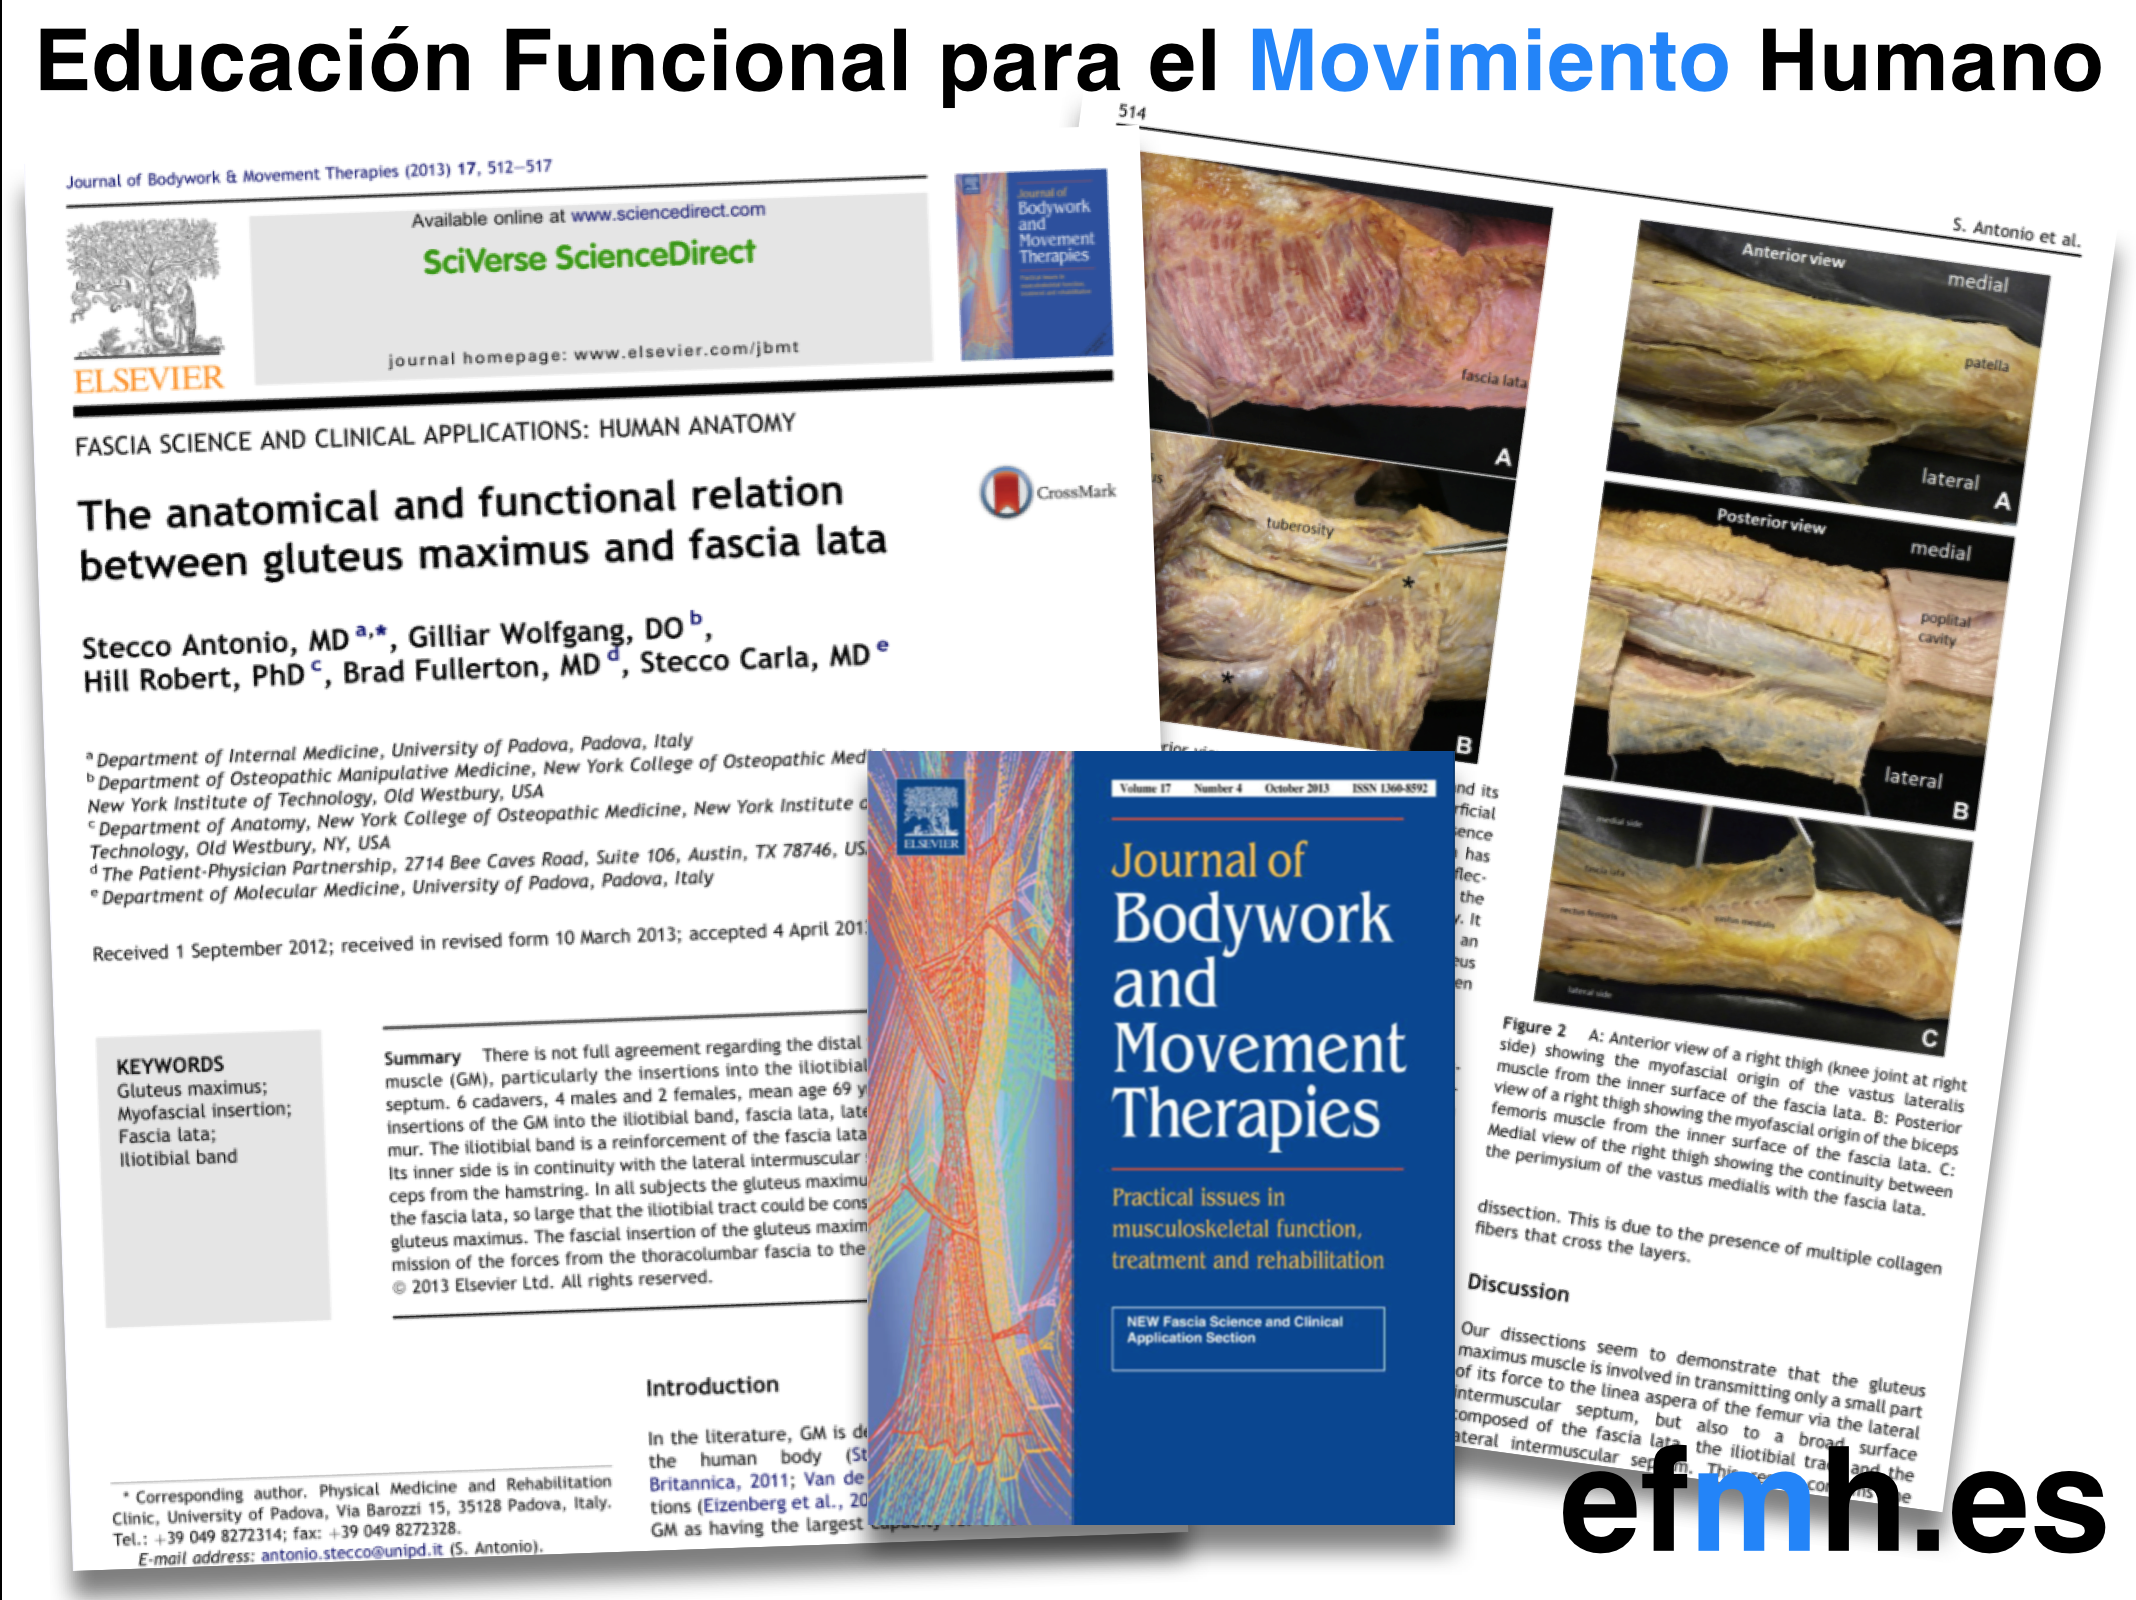 anatomical and functional relation between gluteus maximus and fascia lata